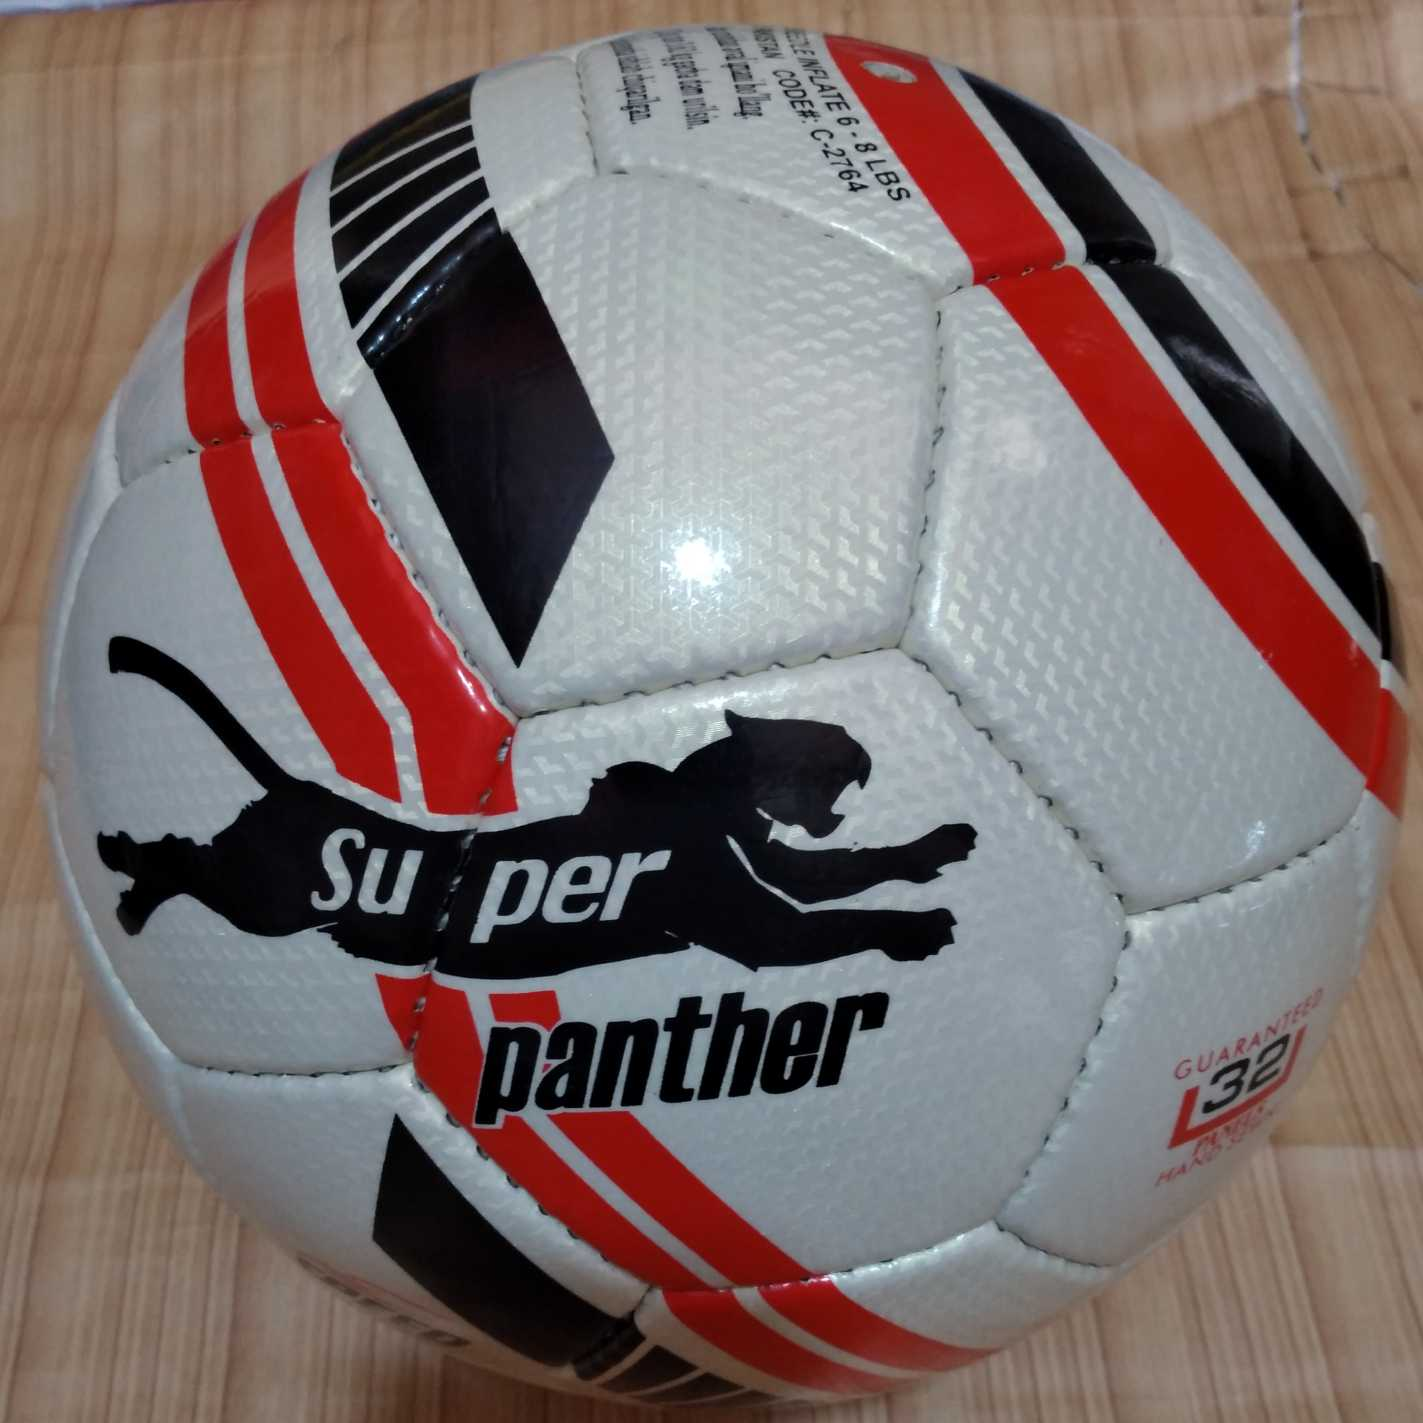 Panther Soccer ball